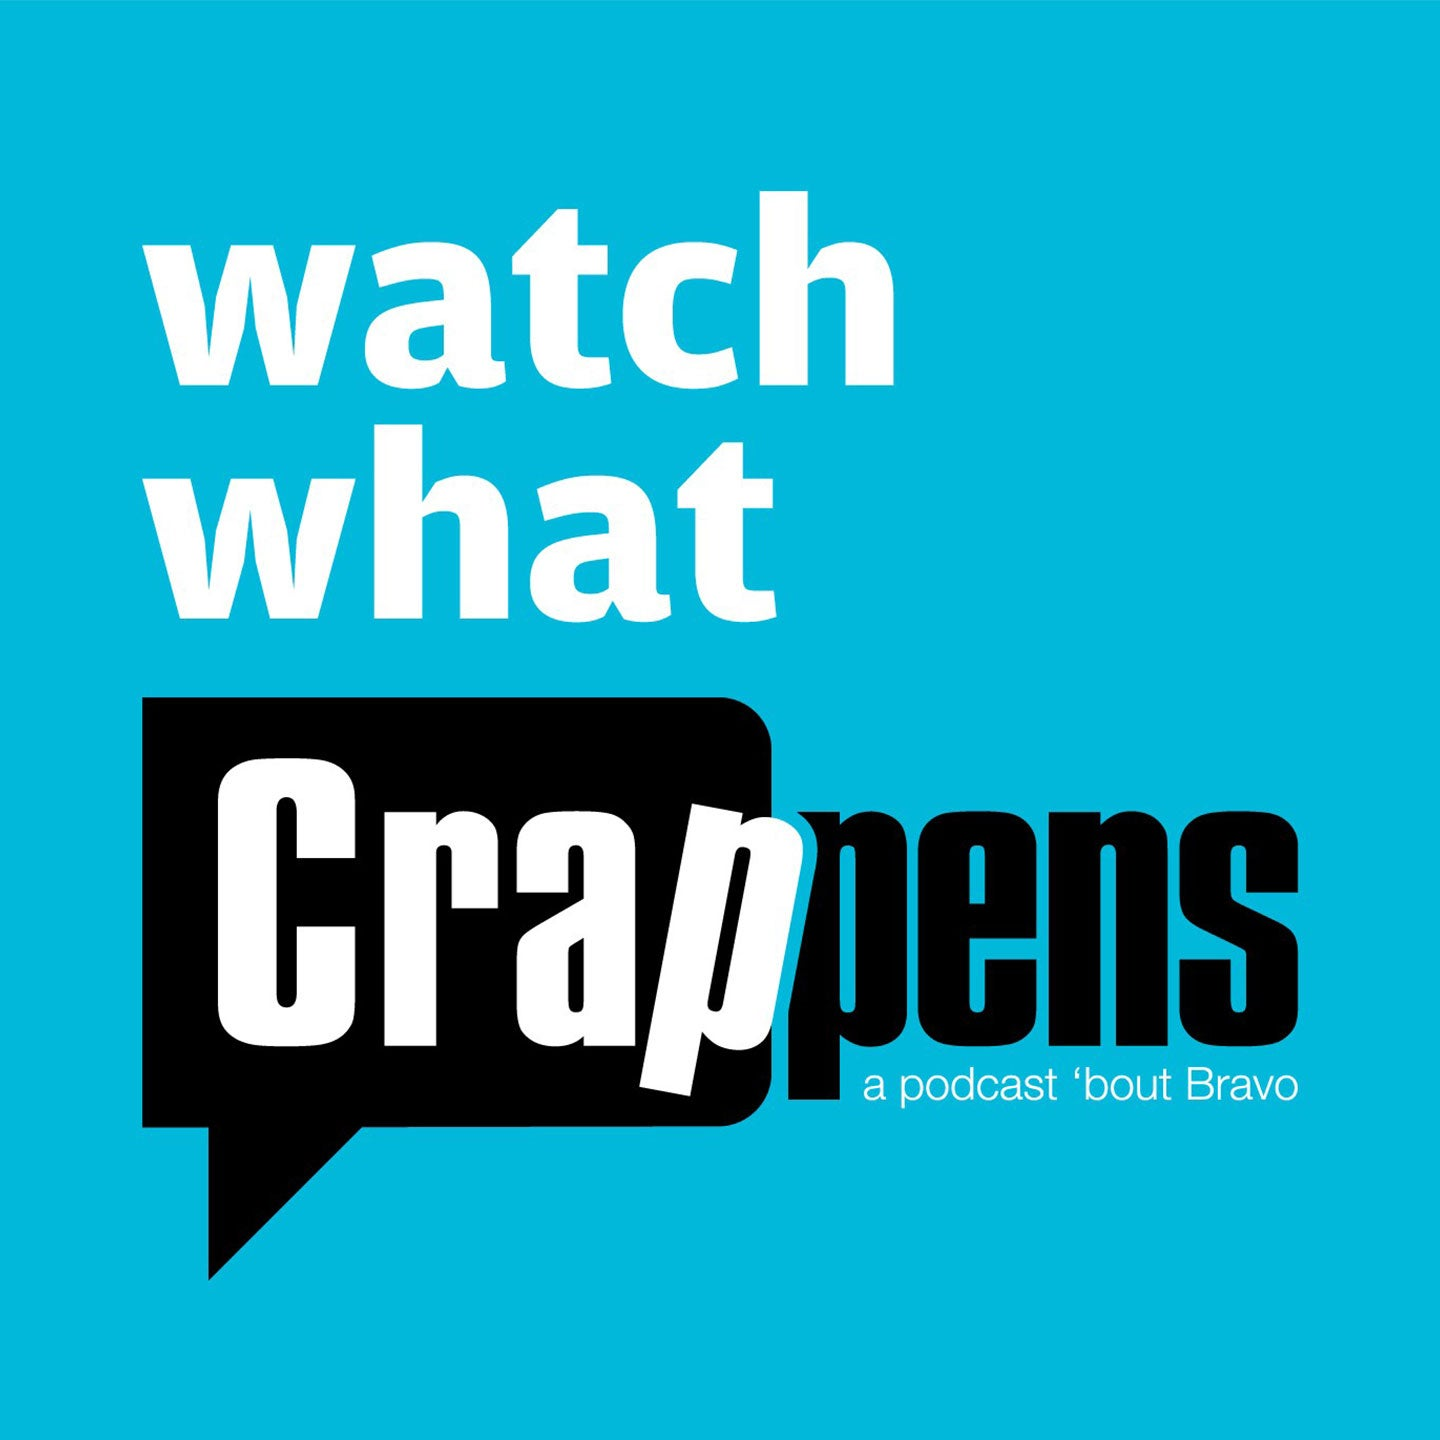 Watch What Crappens Live!